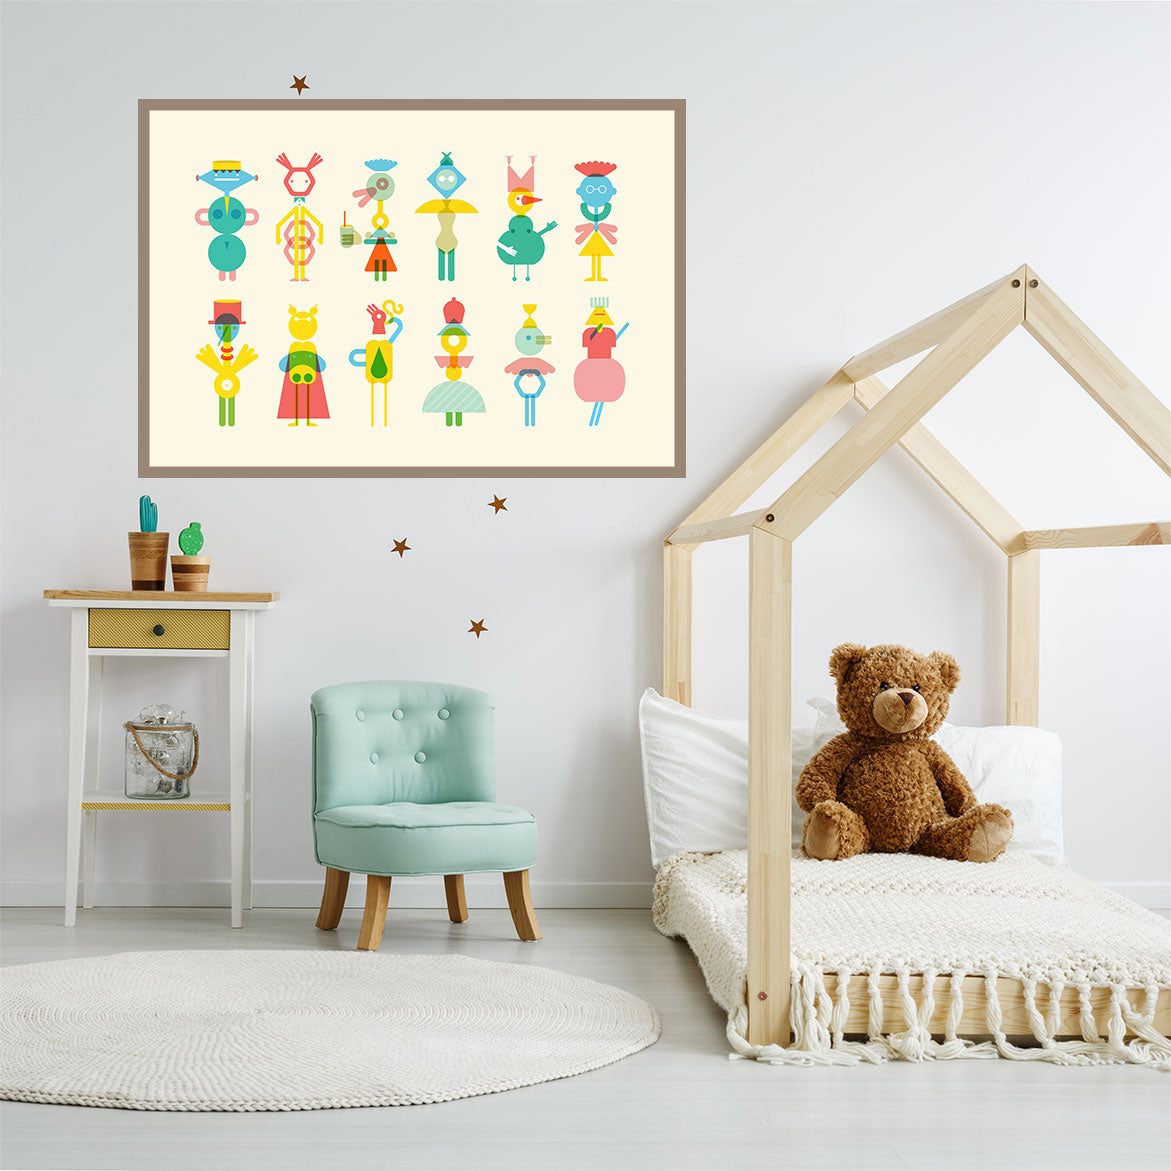 Geometric illustration print with colourful characters, on beige background, in kids room